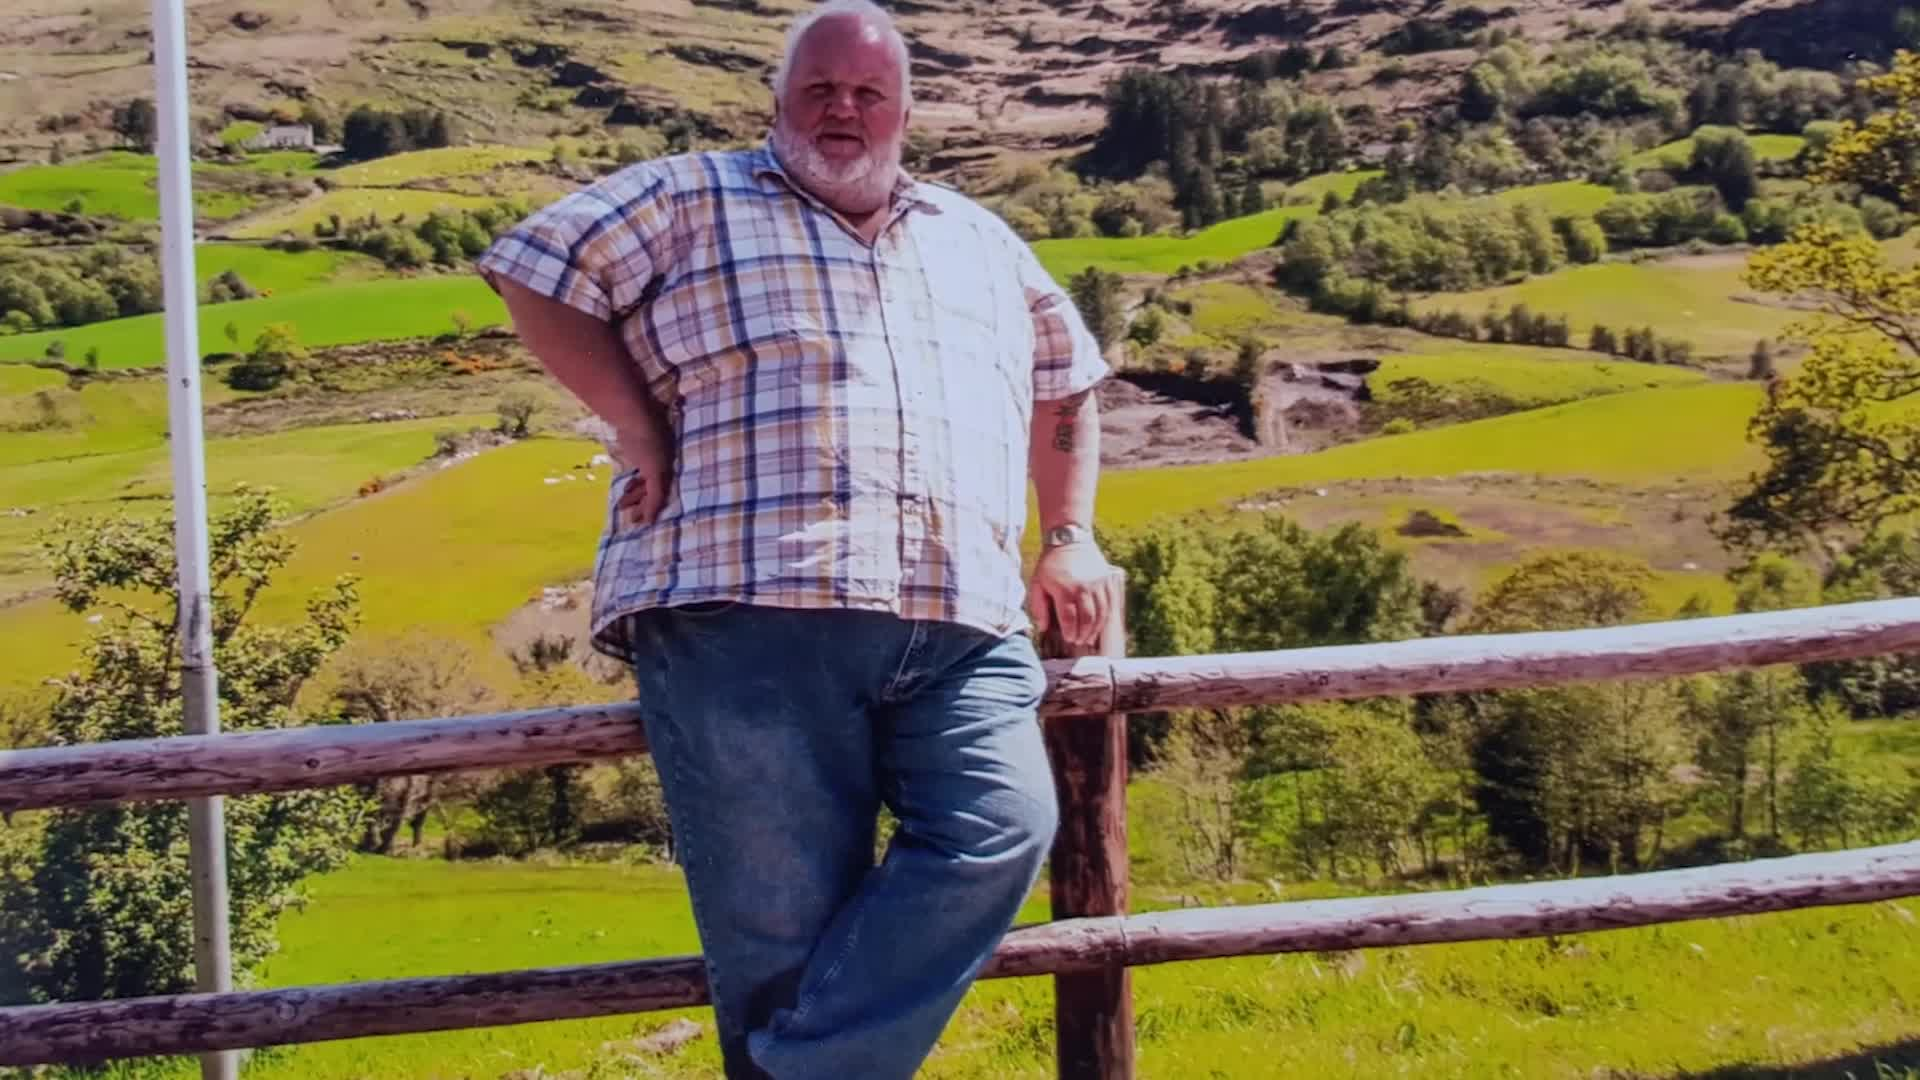 Grandad sheds over 13.5 stone to claim Slimming World title